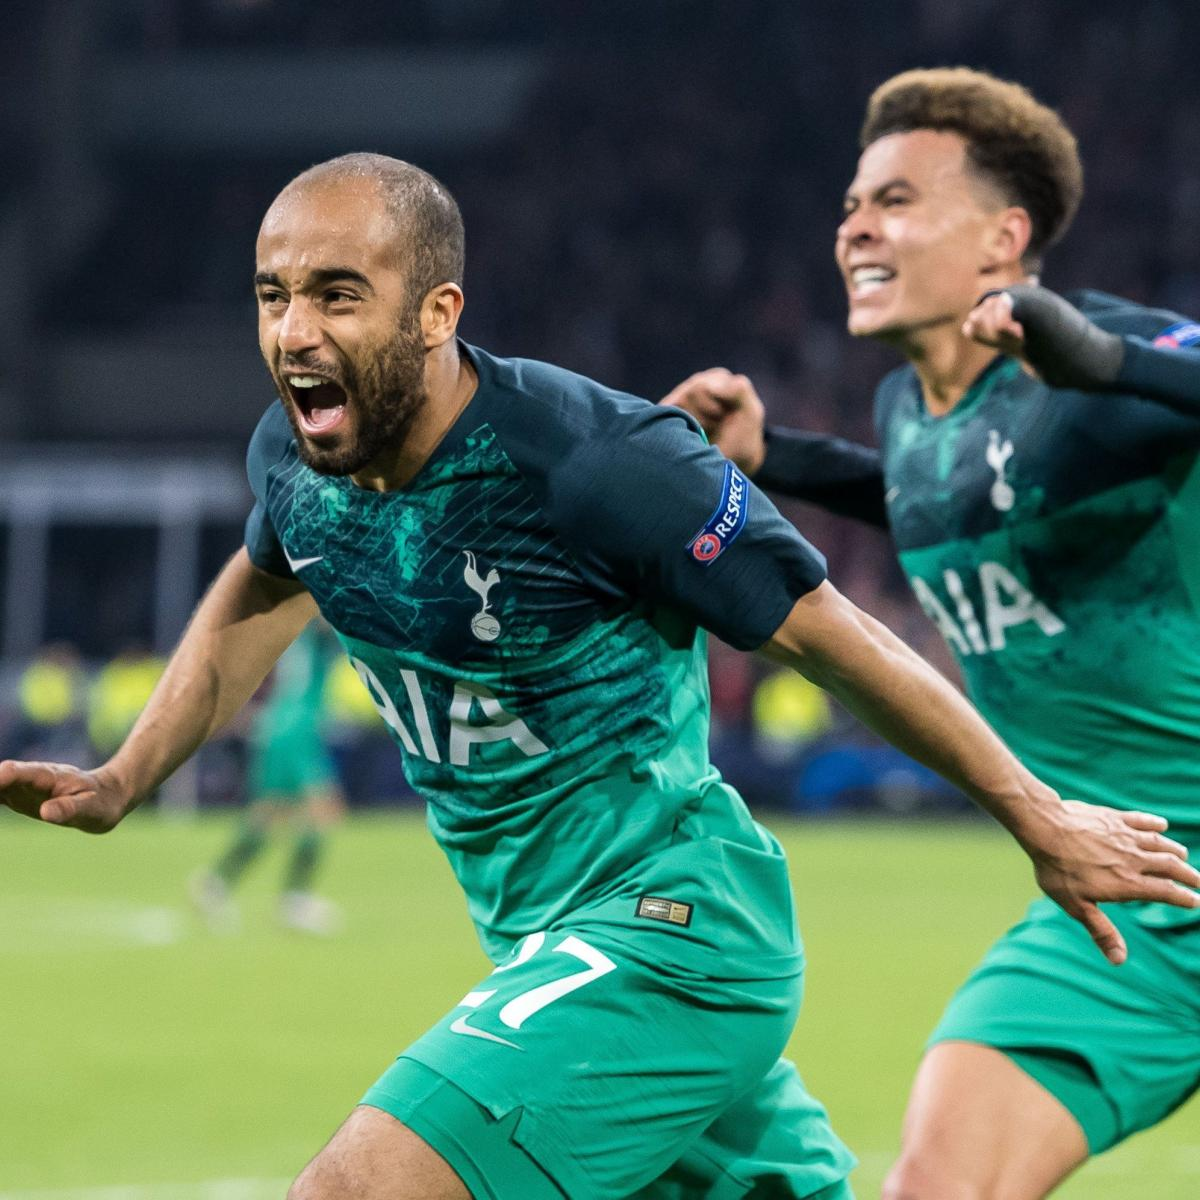 Champions League Final 2019: Date, Venue, Predictions For